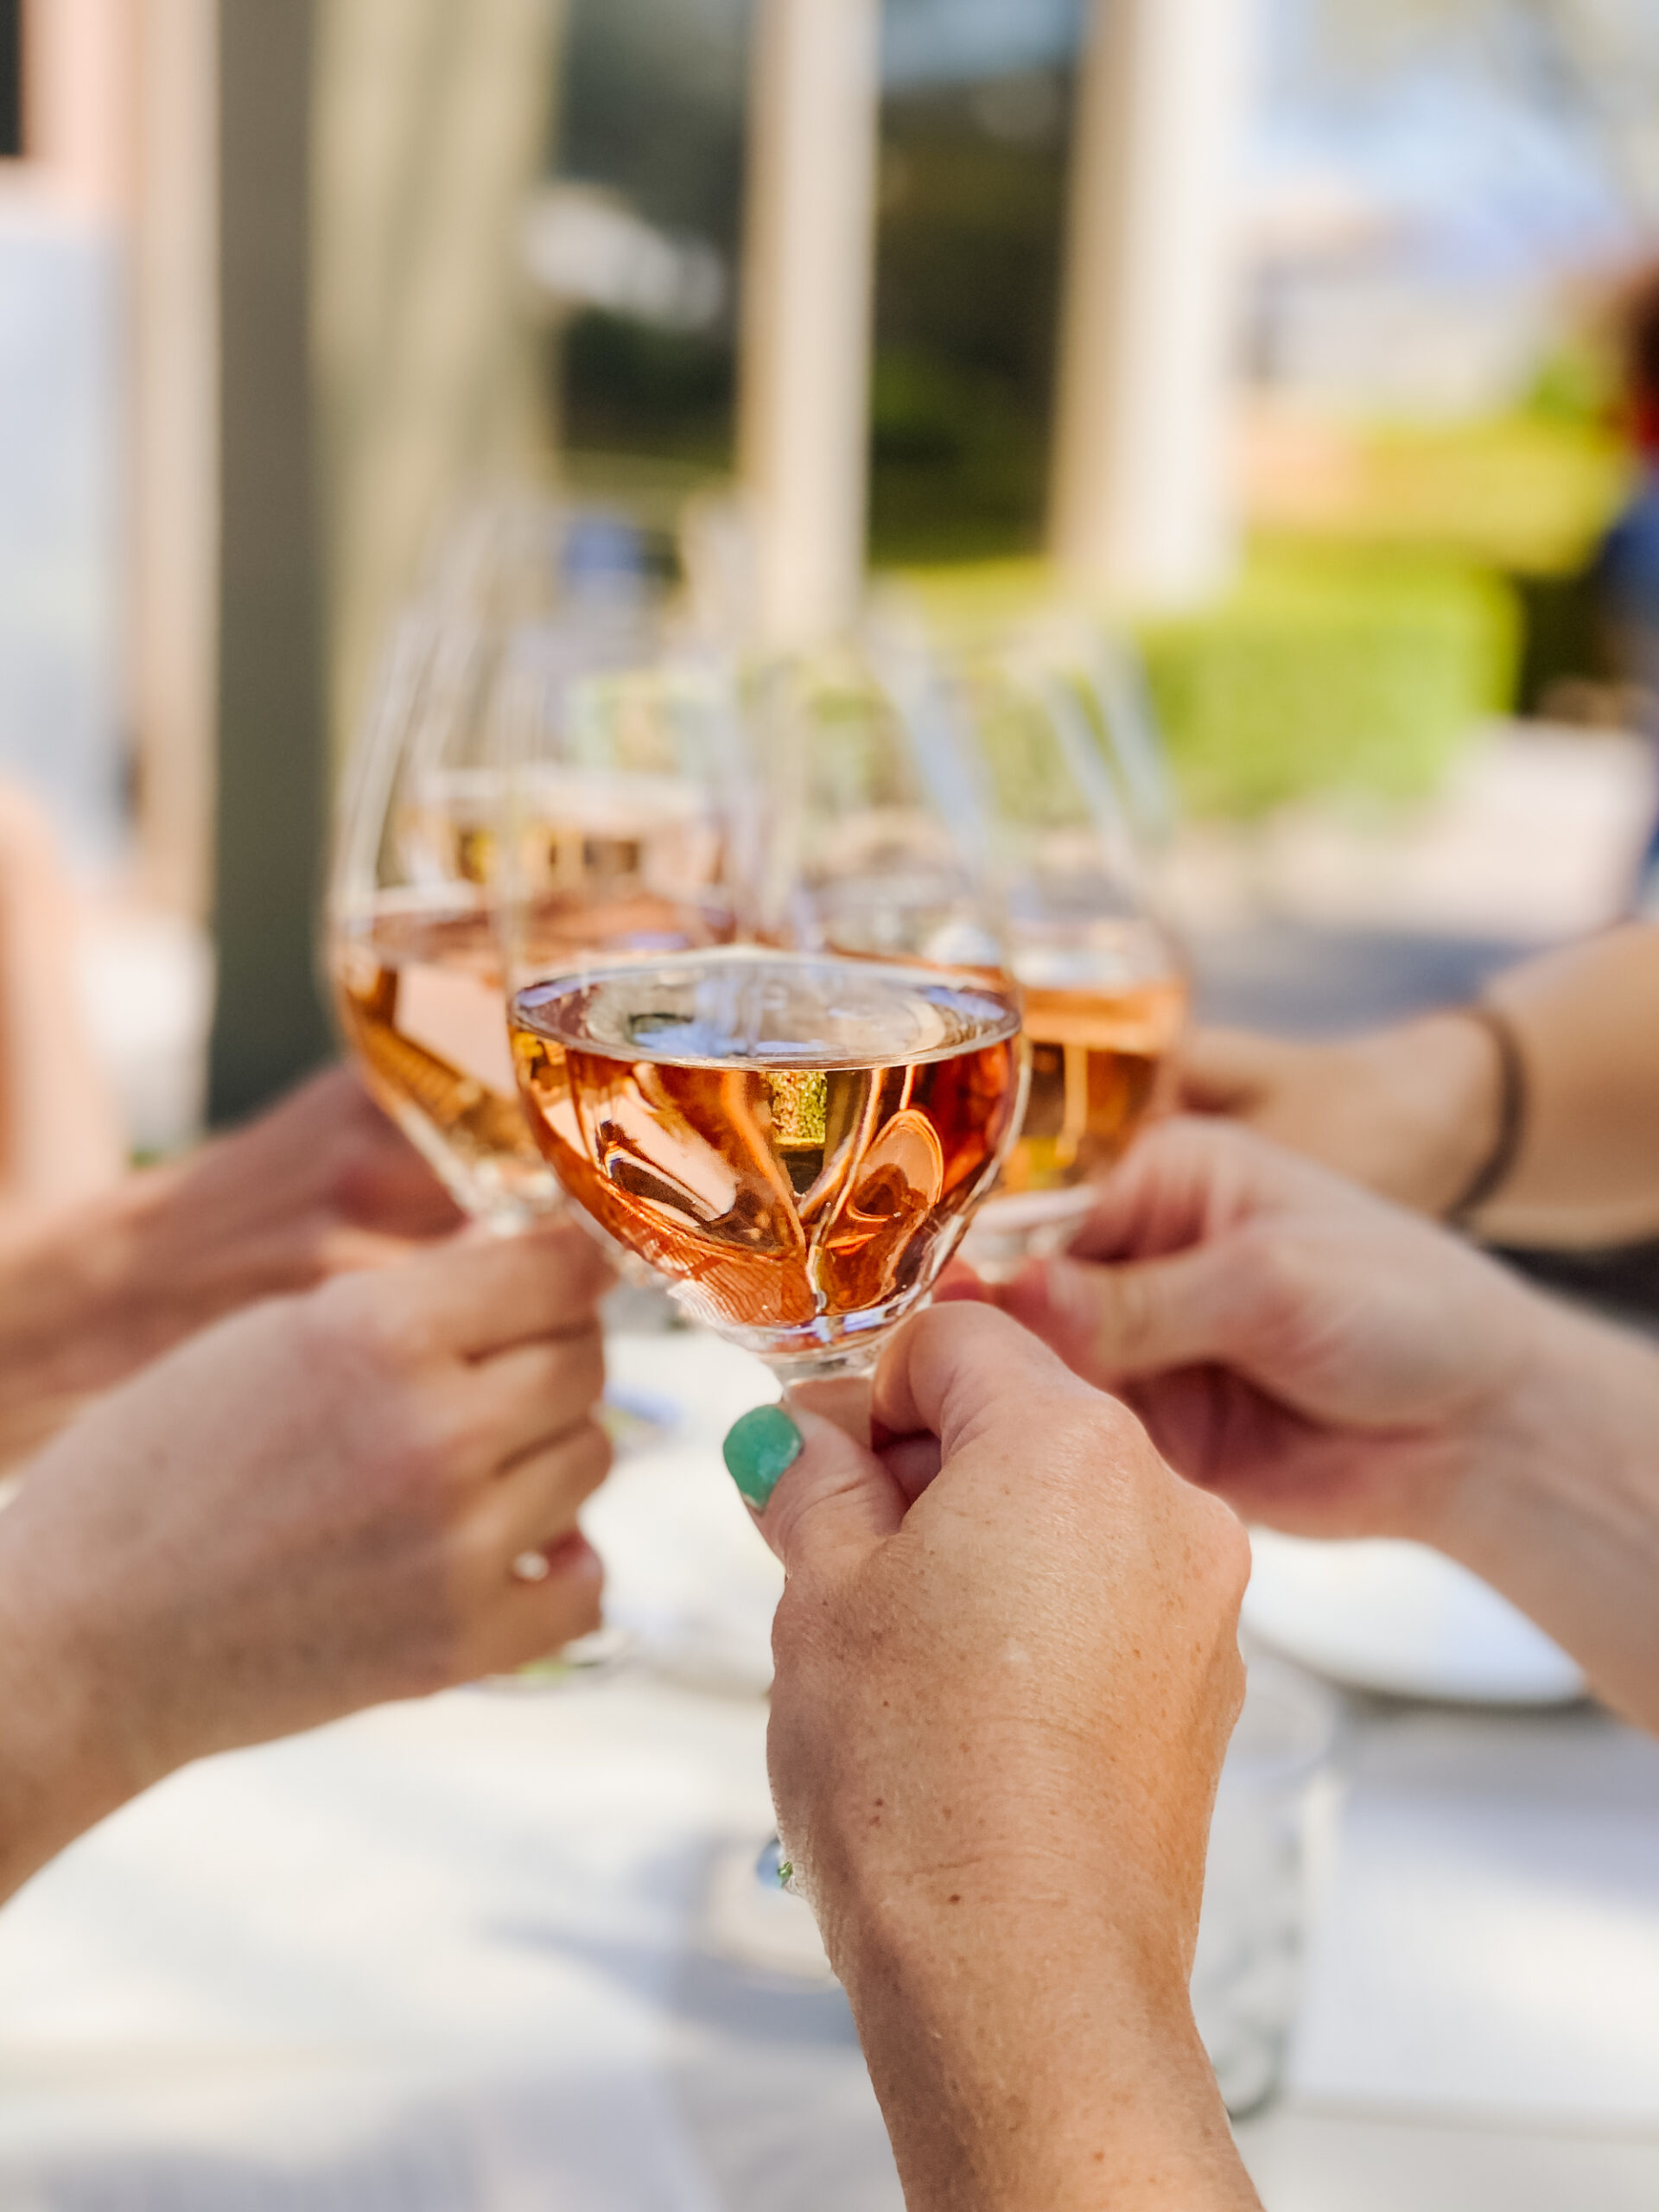 rosé all day, YES WAY #temecula #winetasting #travelandadventure #wanderlust